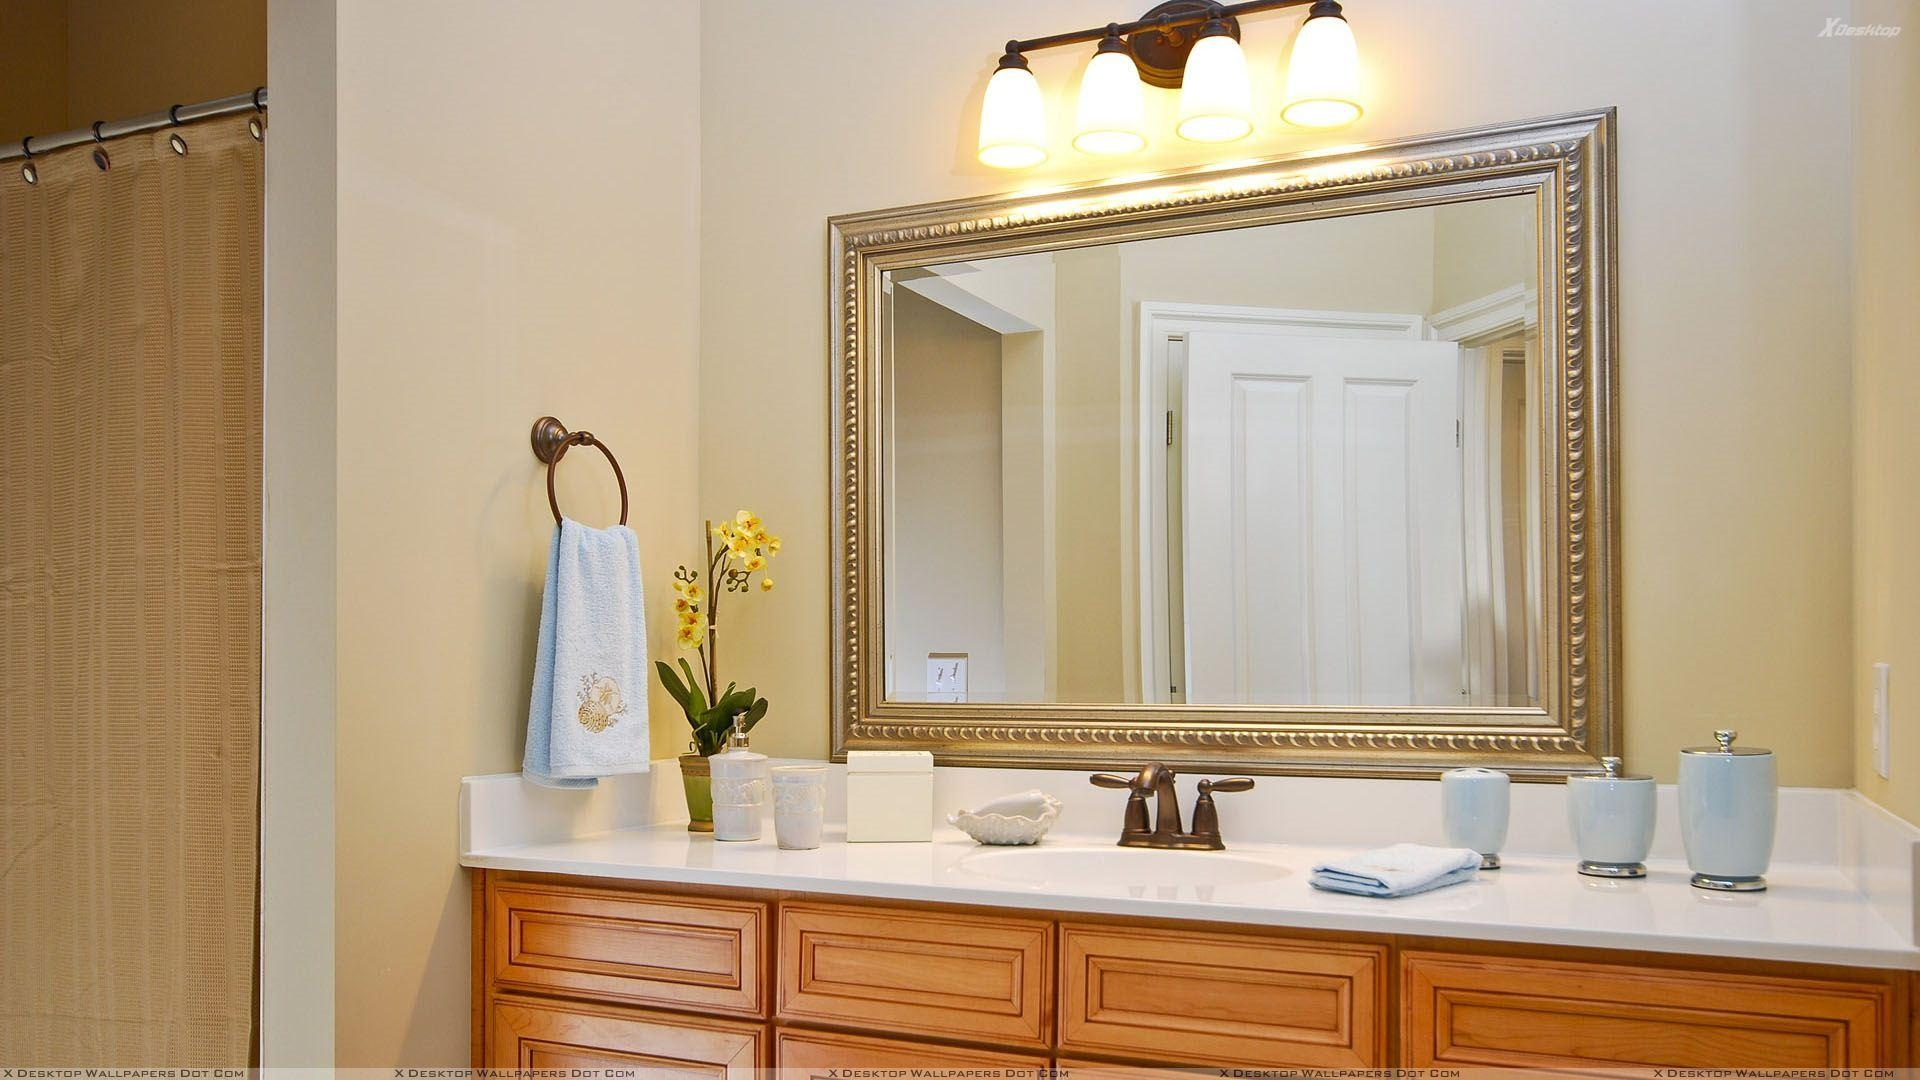 Bathroom Beautiful Vanity Mirrors Decorative Regarding For Image